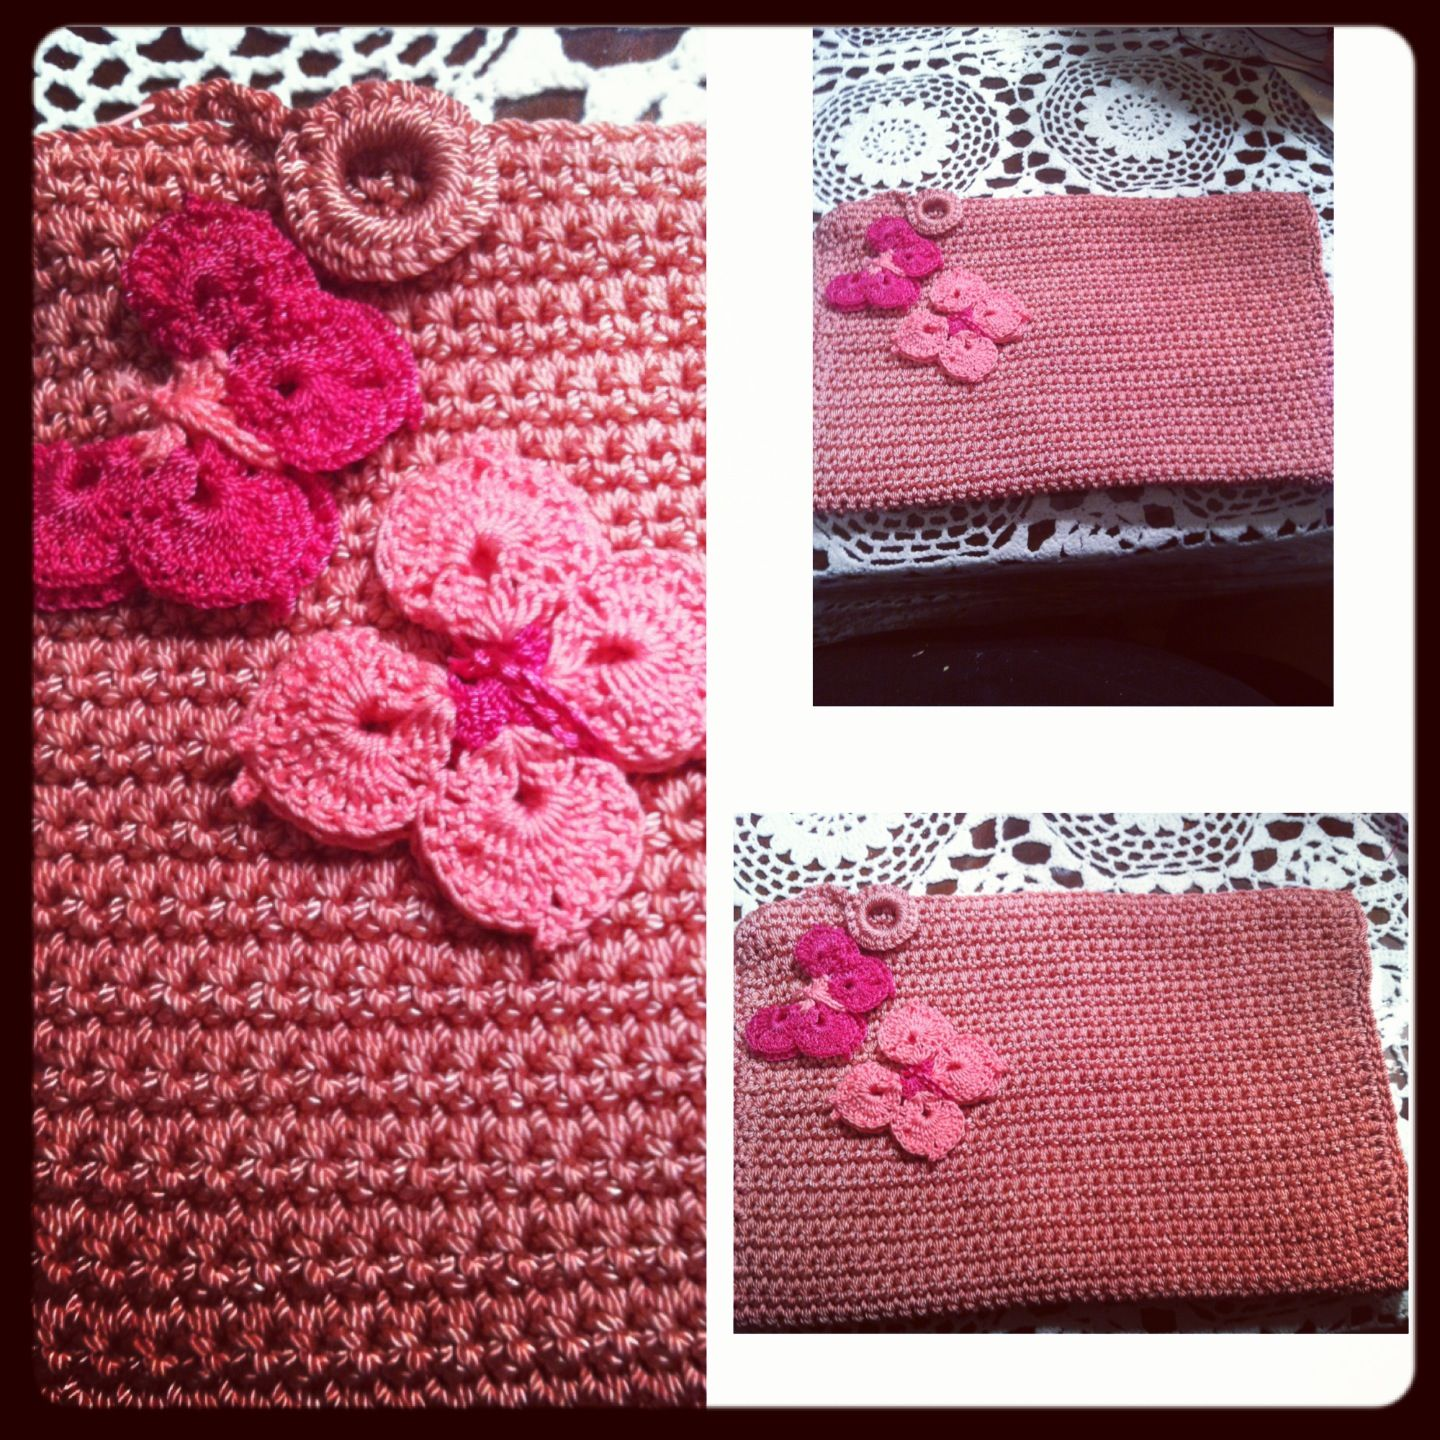 Crochet Cosmetic Bag Pattern : Crochet makeup bag Crochet e tric? Pinterest